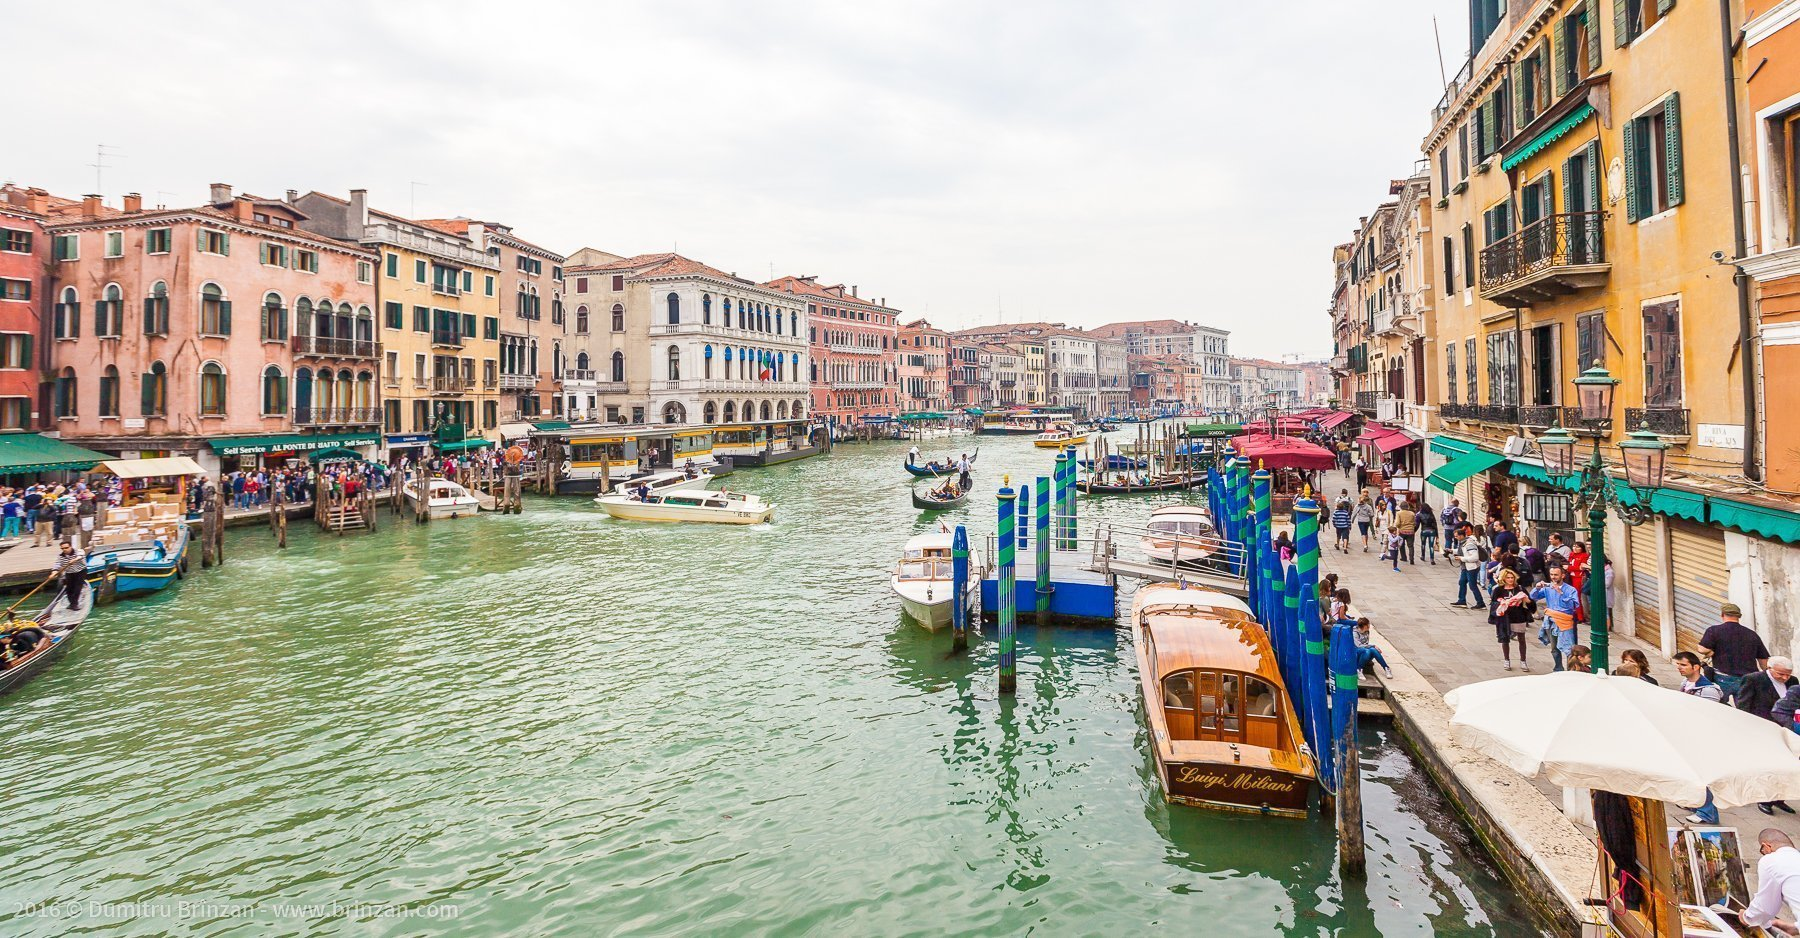 Most streets in Venice are narrow and crowded with tourists.